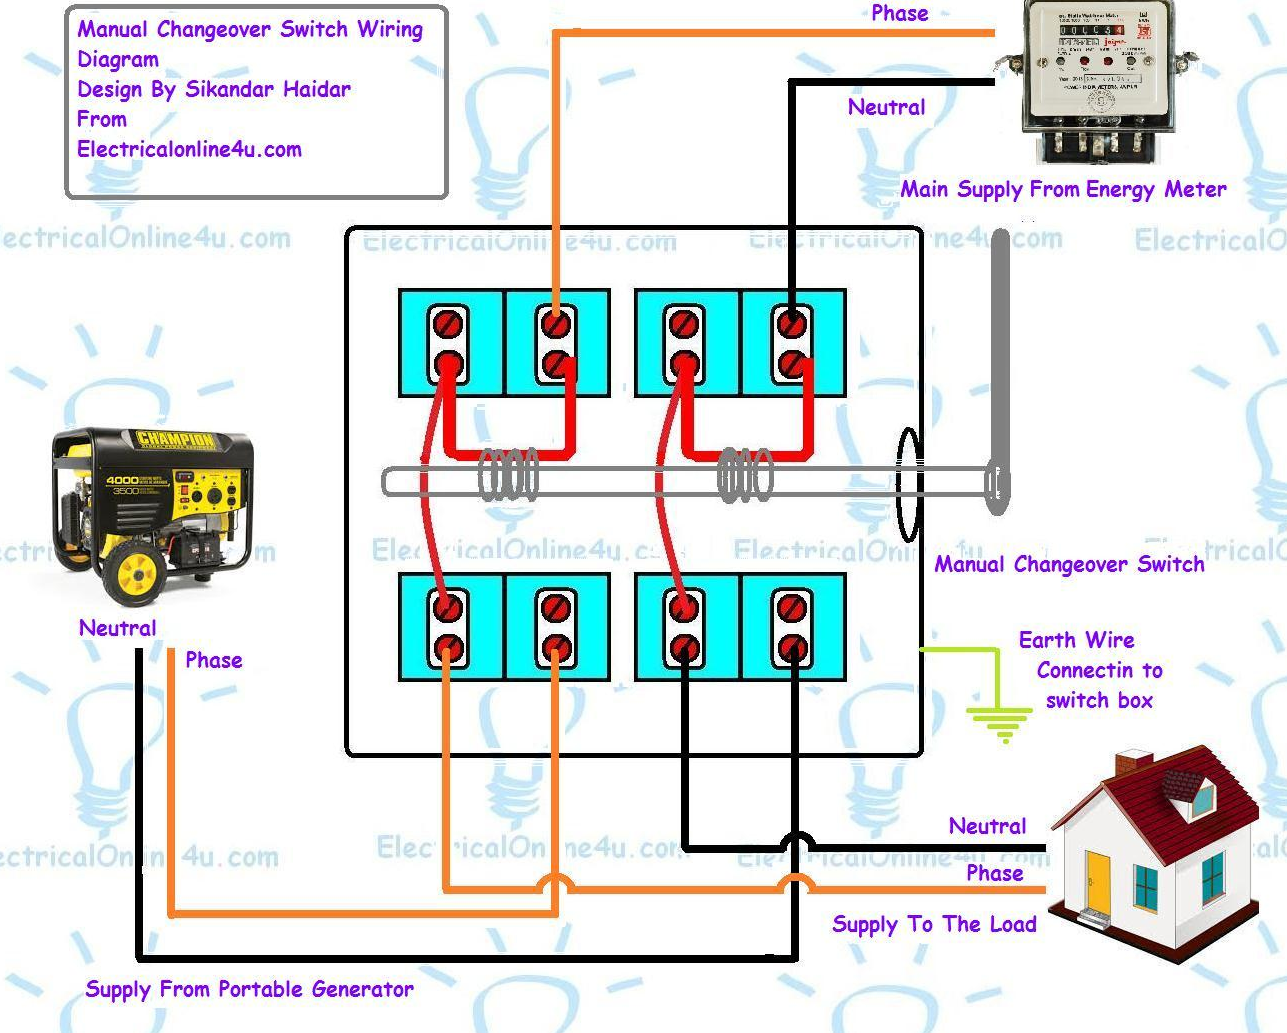 manual%2Bchangeover%2Bswitch%2Bwiring%2Bdiagram manual changeover switch wiring diagram for portable generator single phase generator wiring at aneh.co